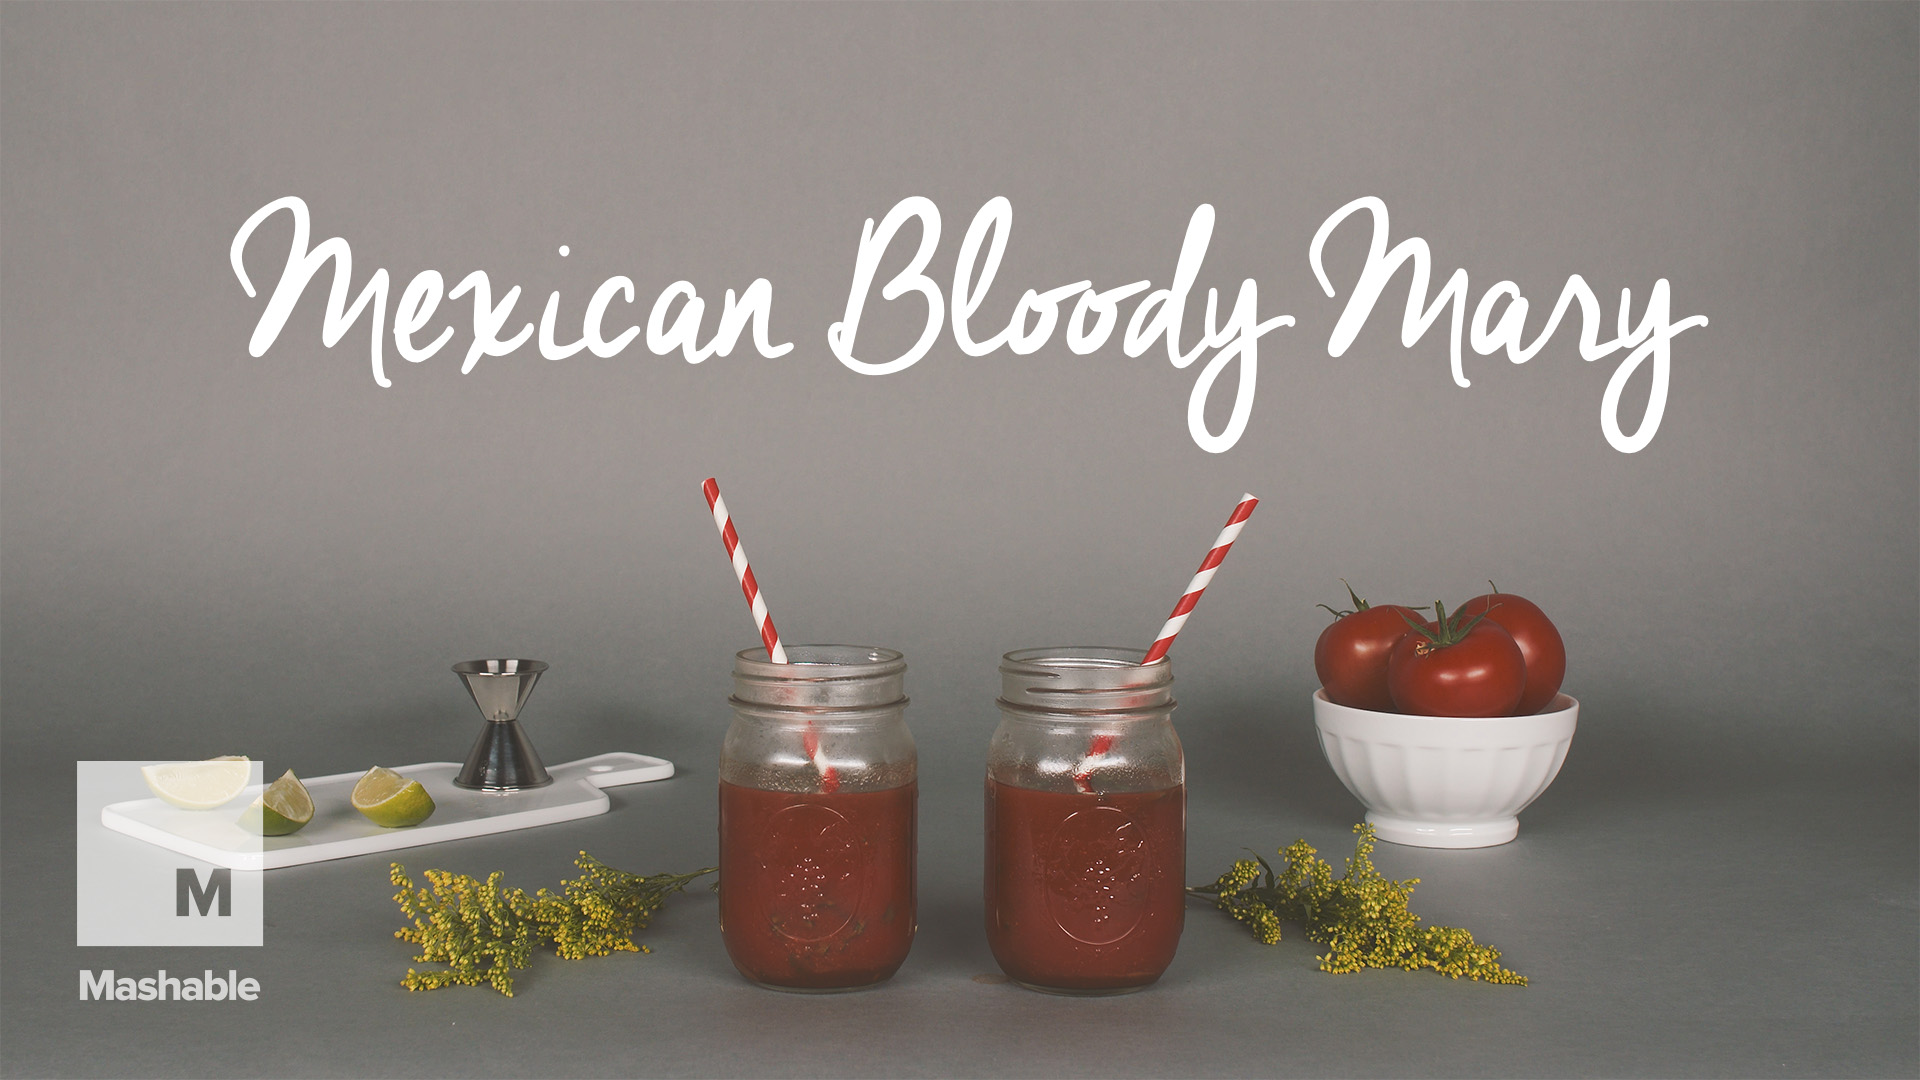 How to Make a Mexican Style Spicy Bloody Mary